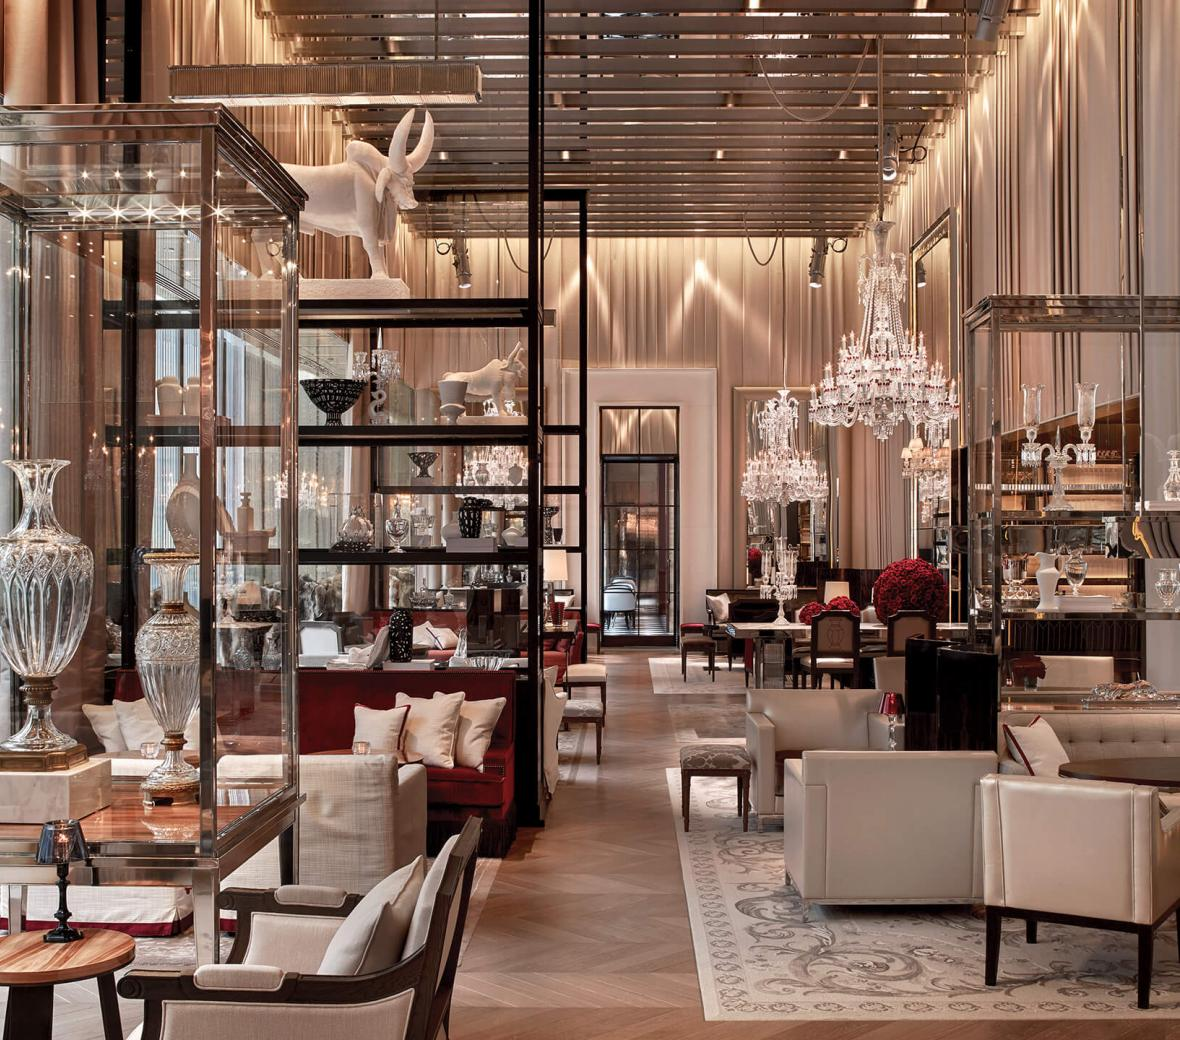 heart of gold inspiring interiors elegant in manhattan manhattan interiors Luxury Hotel in Manhattan, NYC   Baccarat Hotel